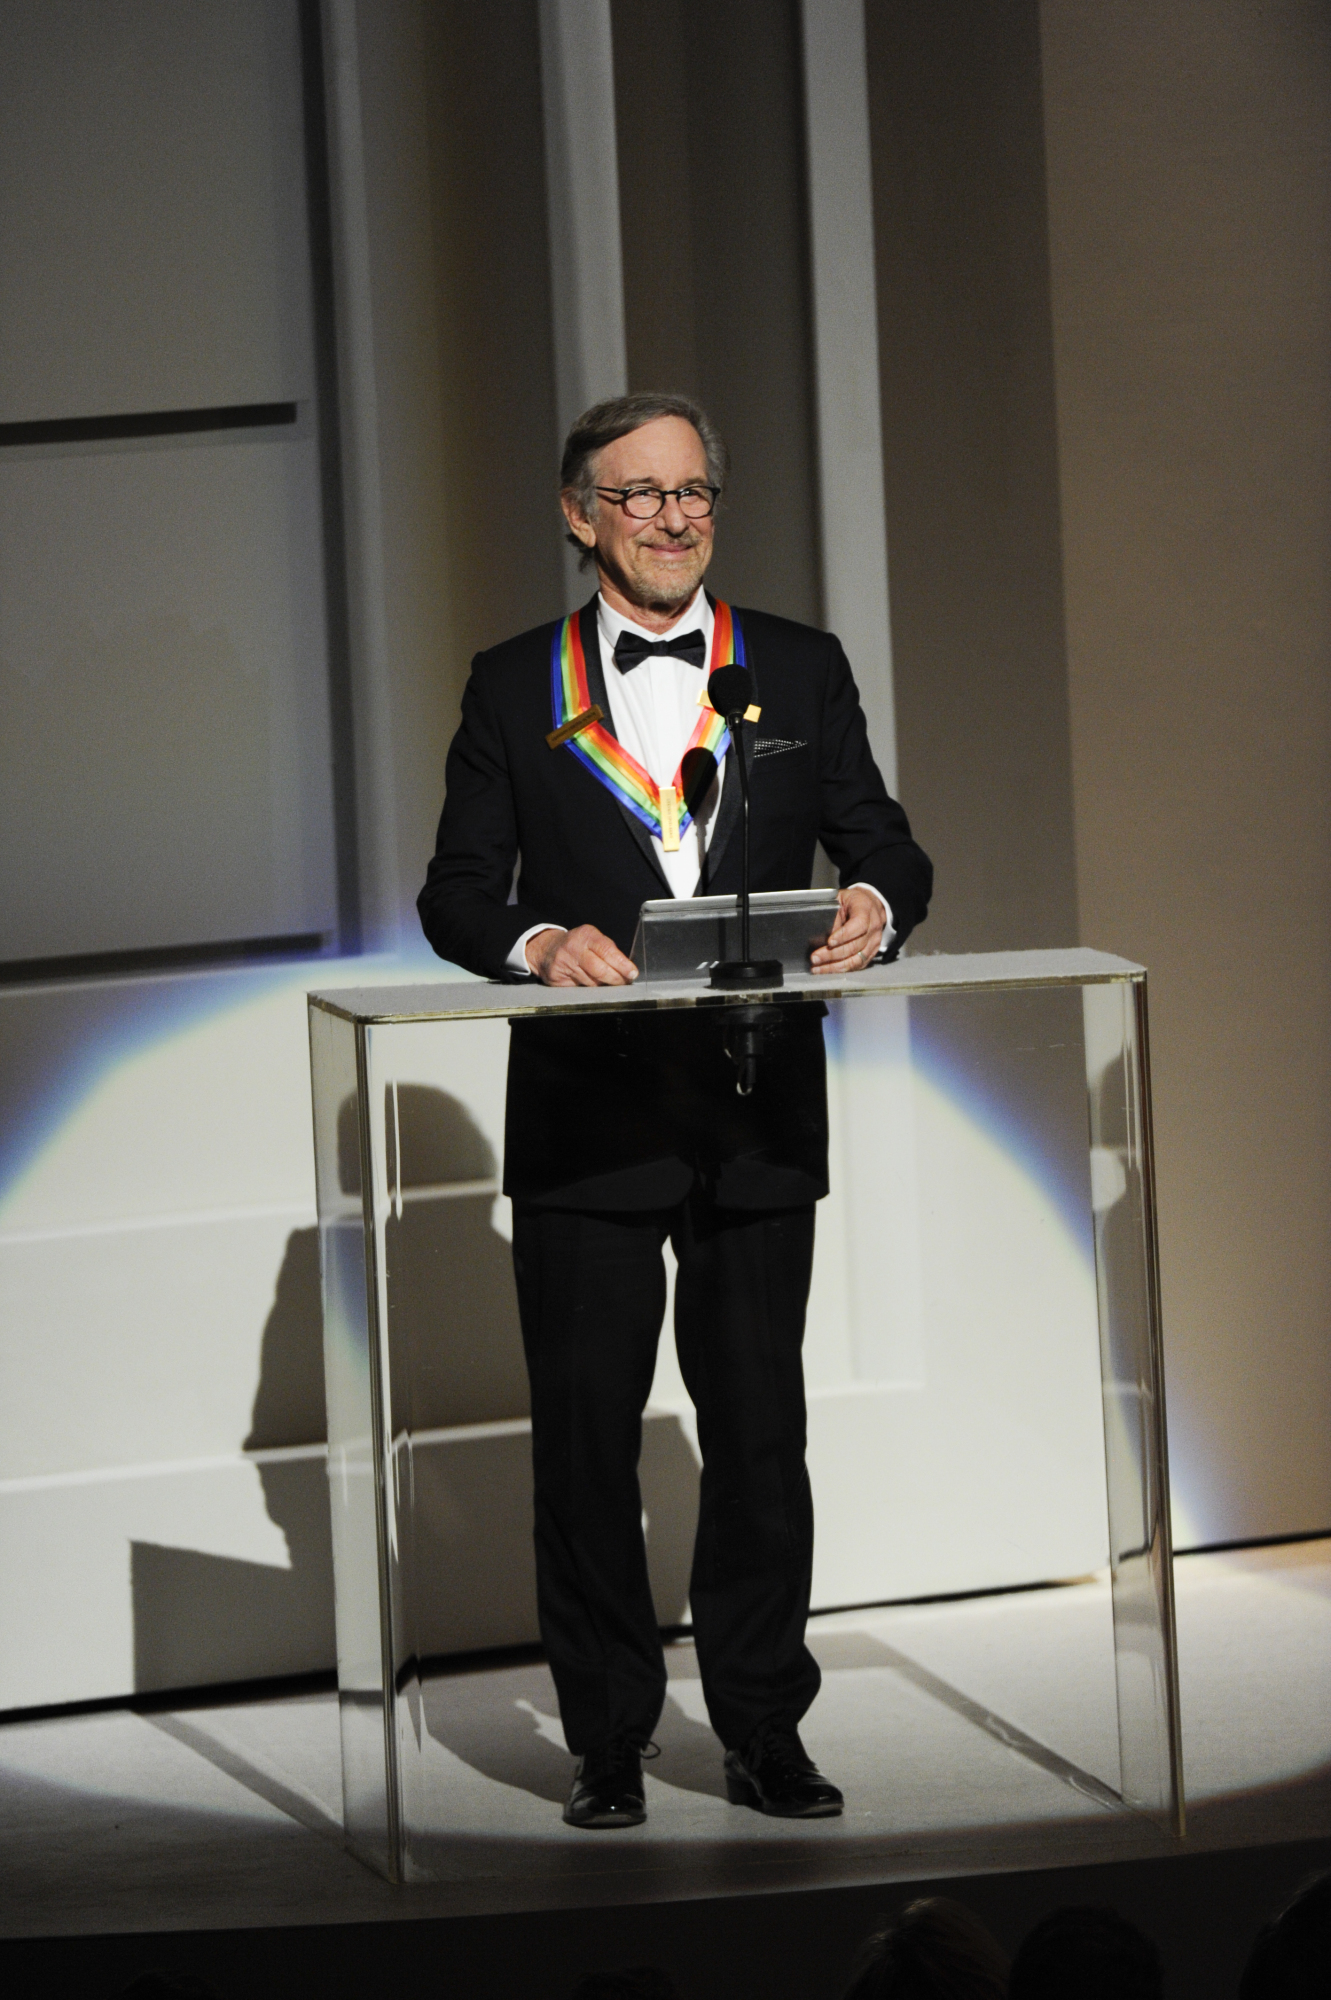 Steven Spielberg Speaks at the 37th Annual Kennedy Center Honors